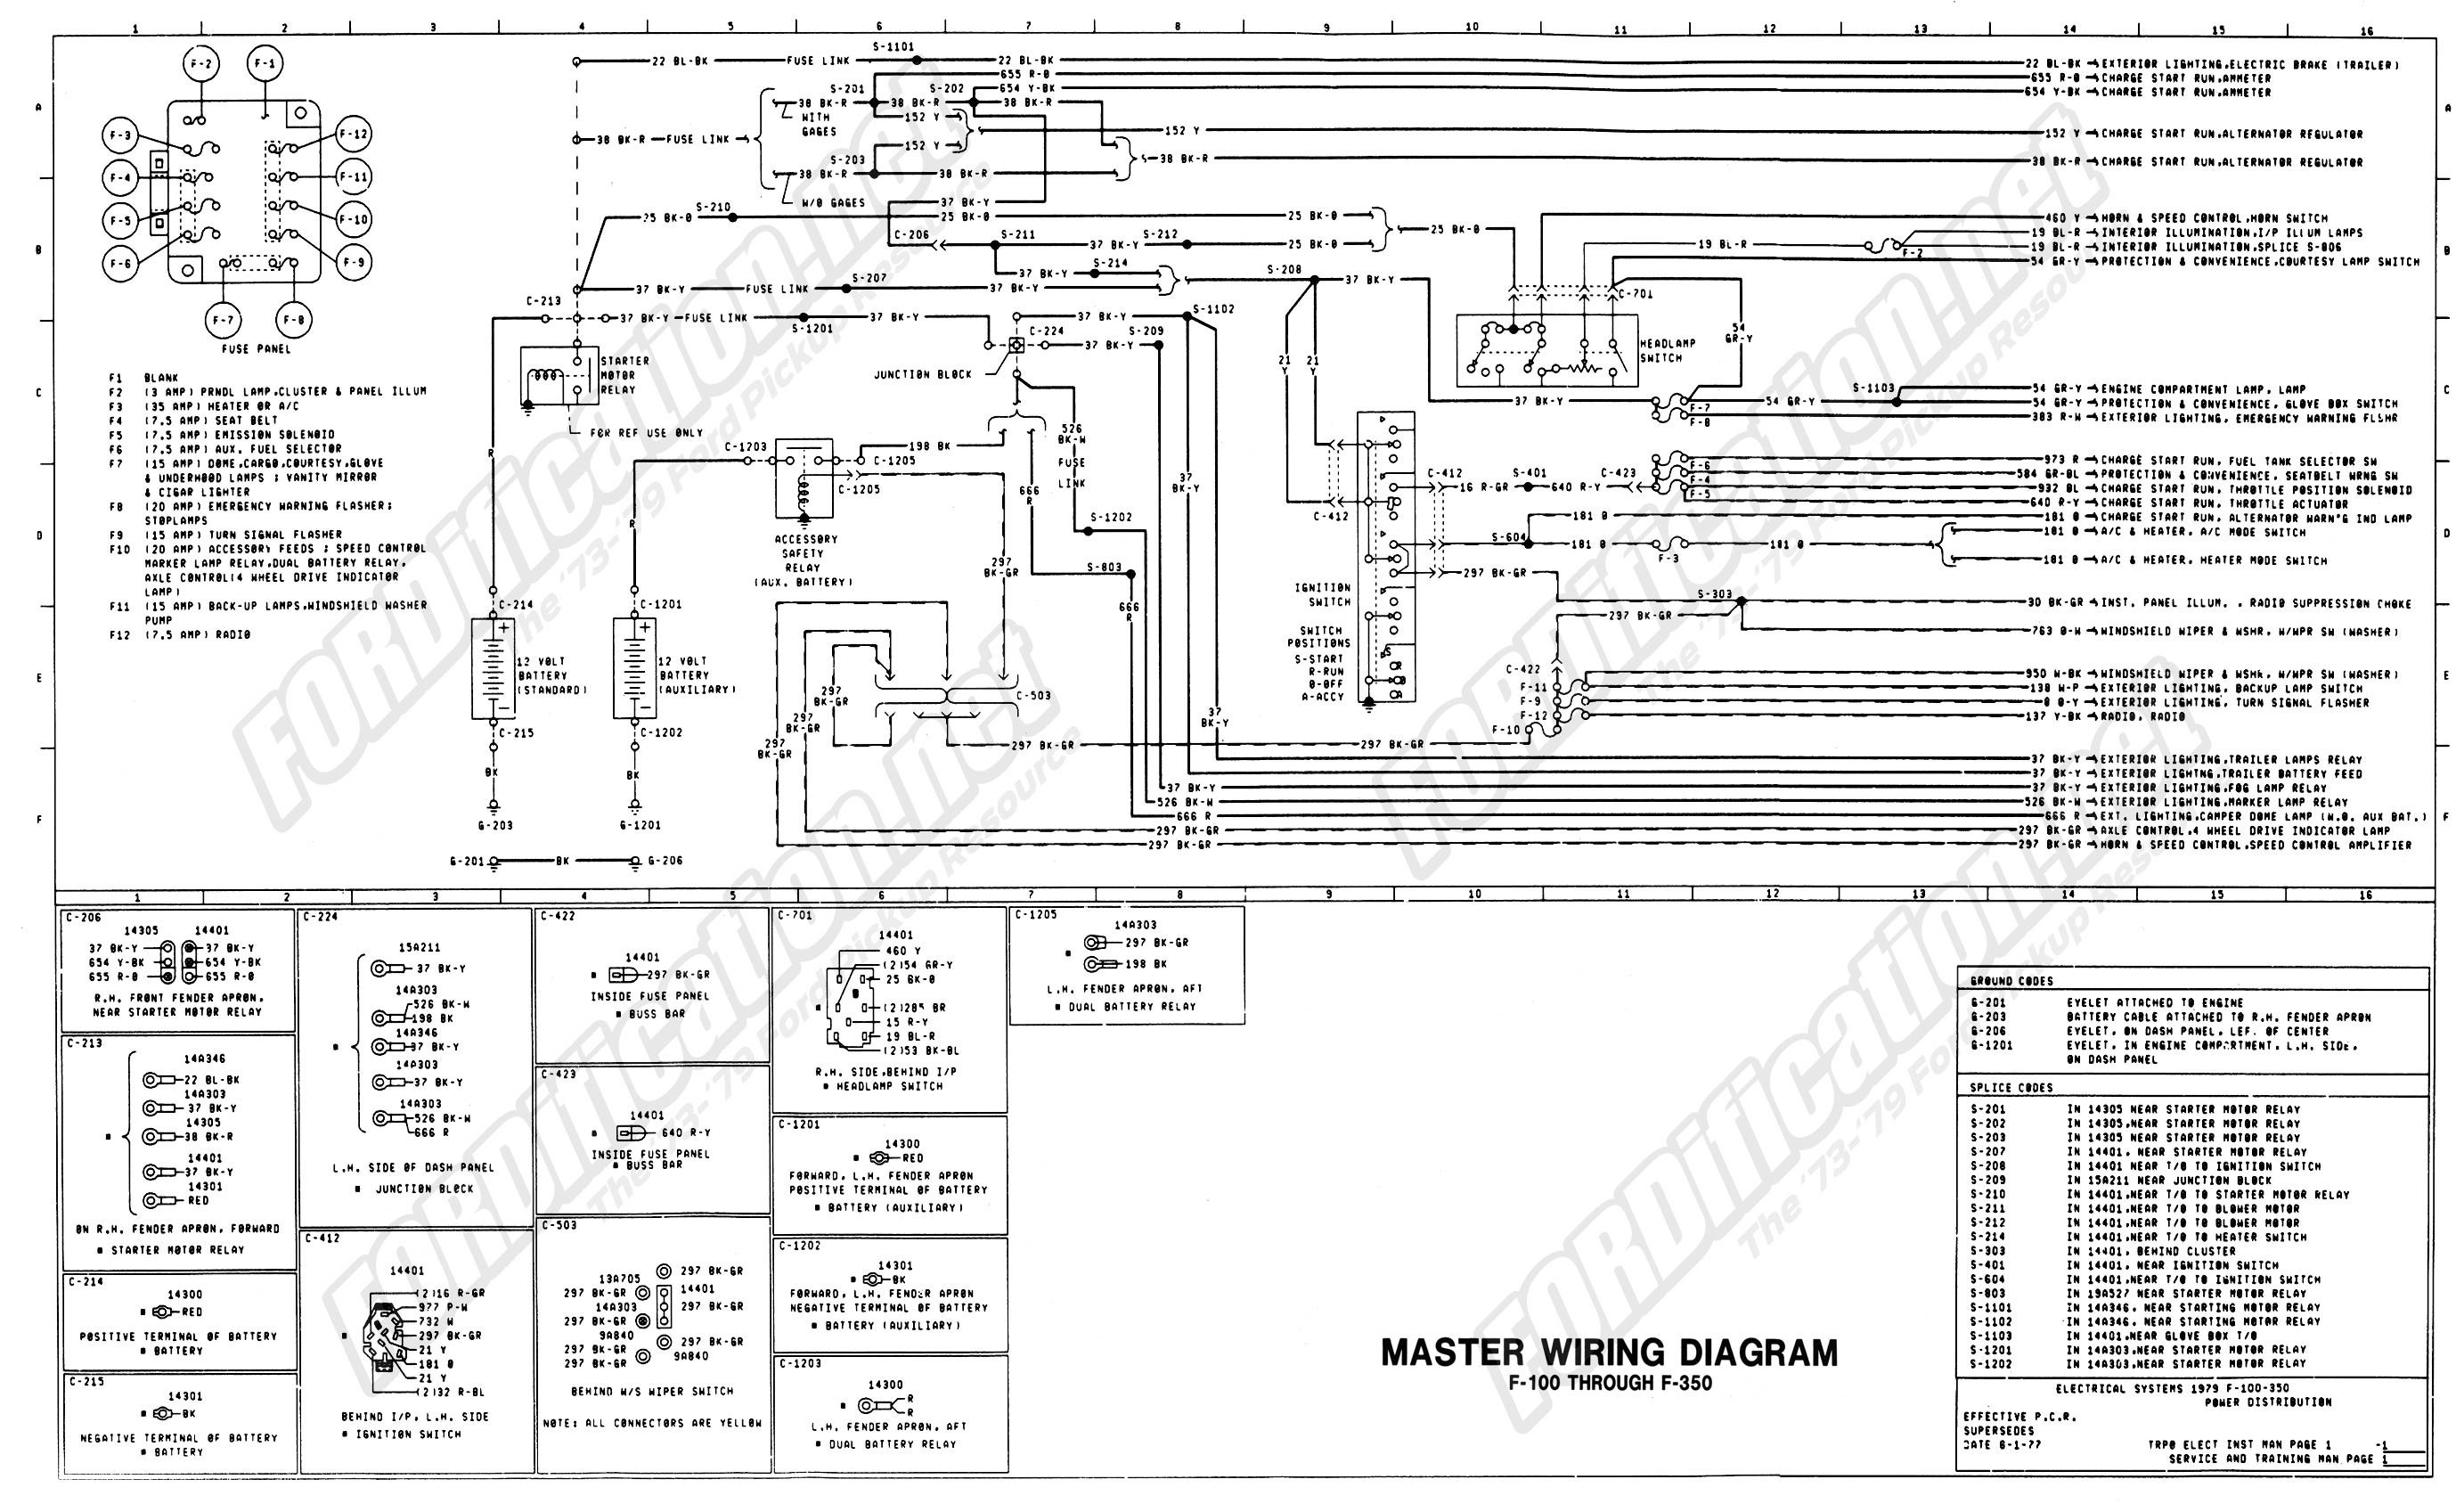 1969 Ford Fuse Box Diagram Wiring Schematic 99 Mack Truck My 1999 Windstar